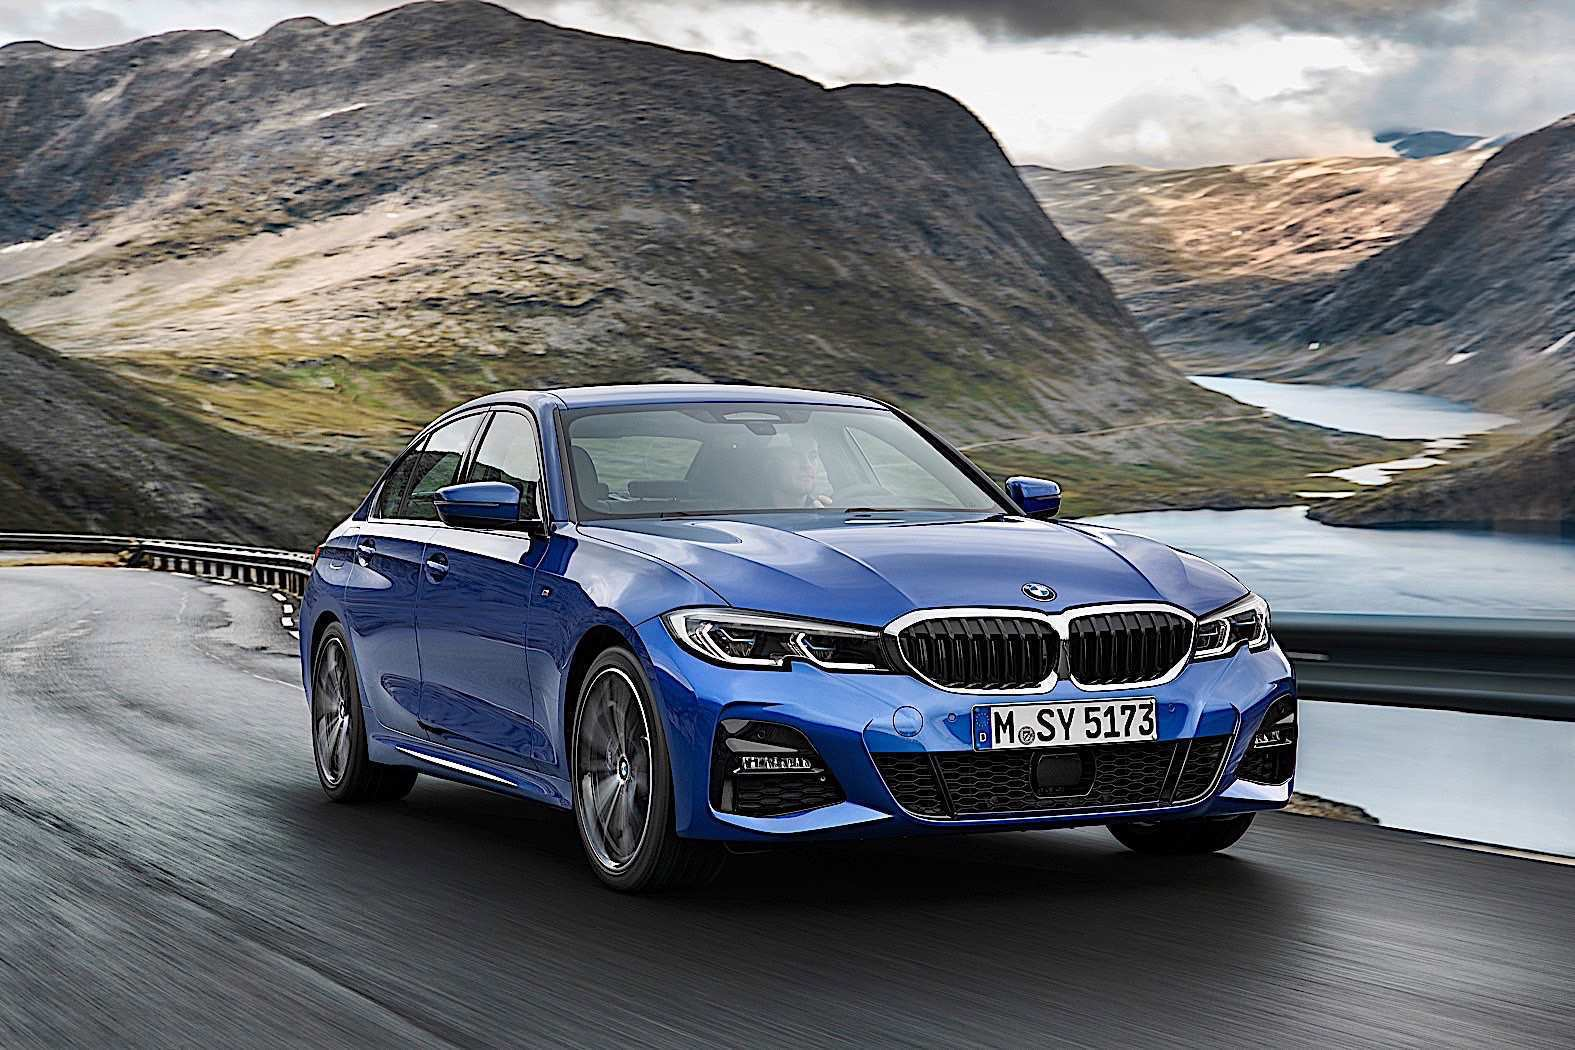 68 All New Bmw 3 2020 Wallpaper with Bmw 3 2020